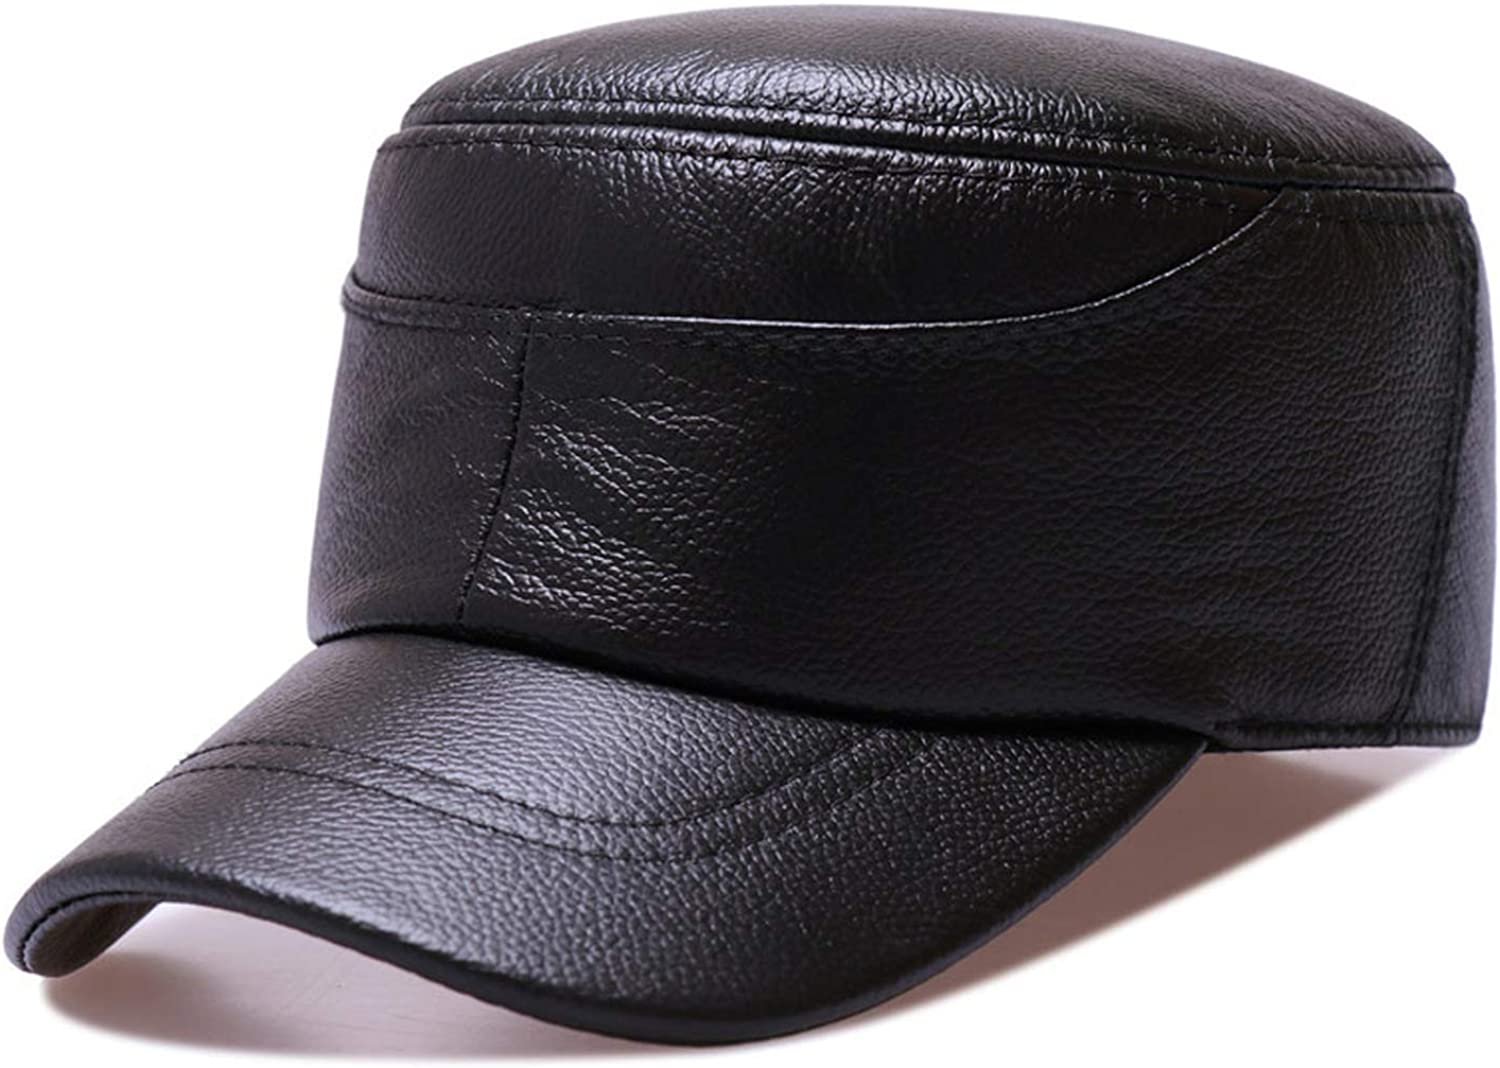 MEIZOKEN Genuine Leather Military Newsboy Hat Women Army Cap Baker Boy Hat Spring Autumn Duckbill Flat Top